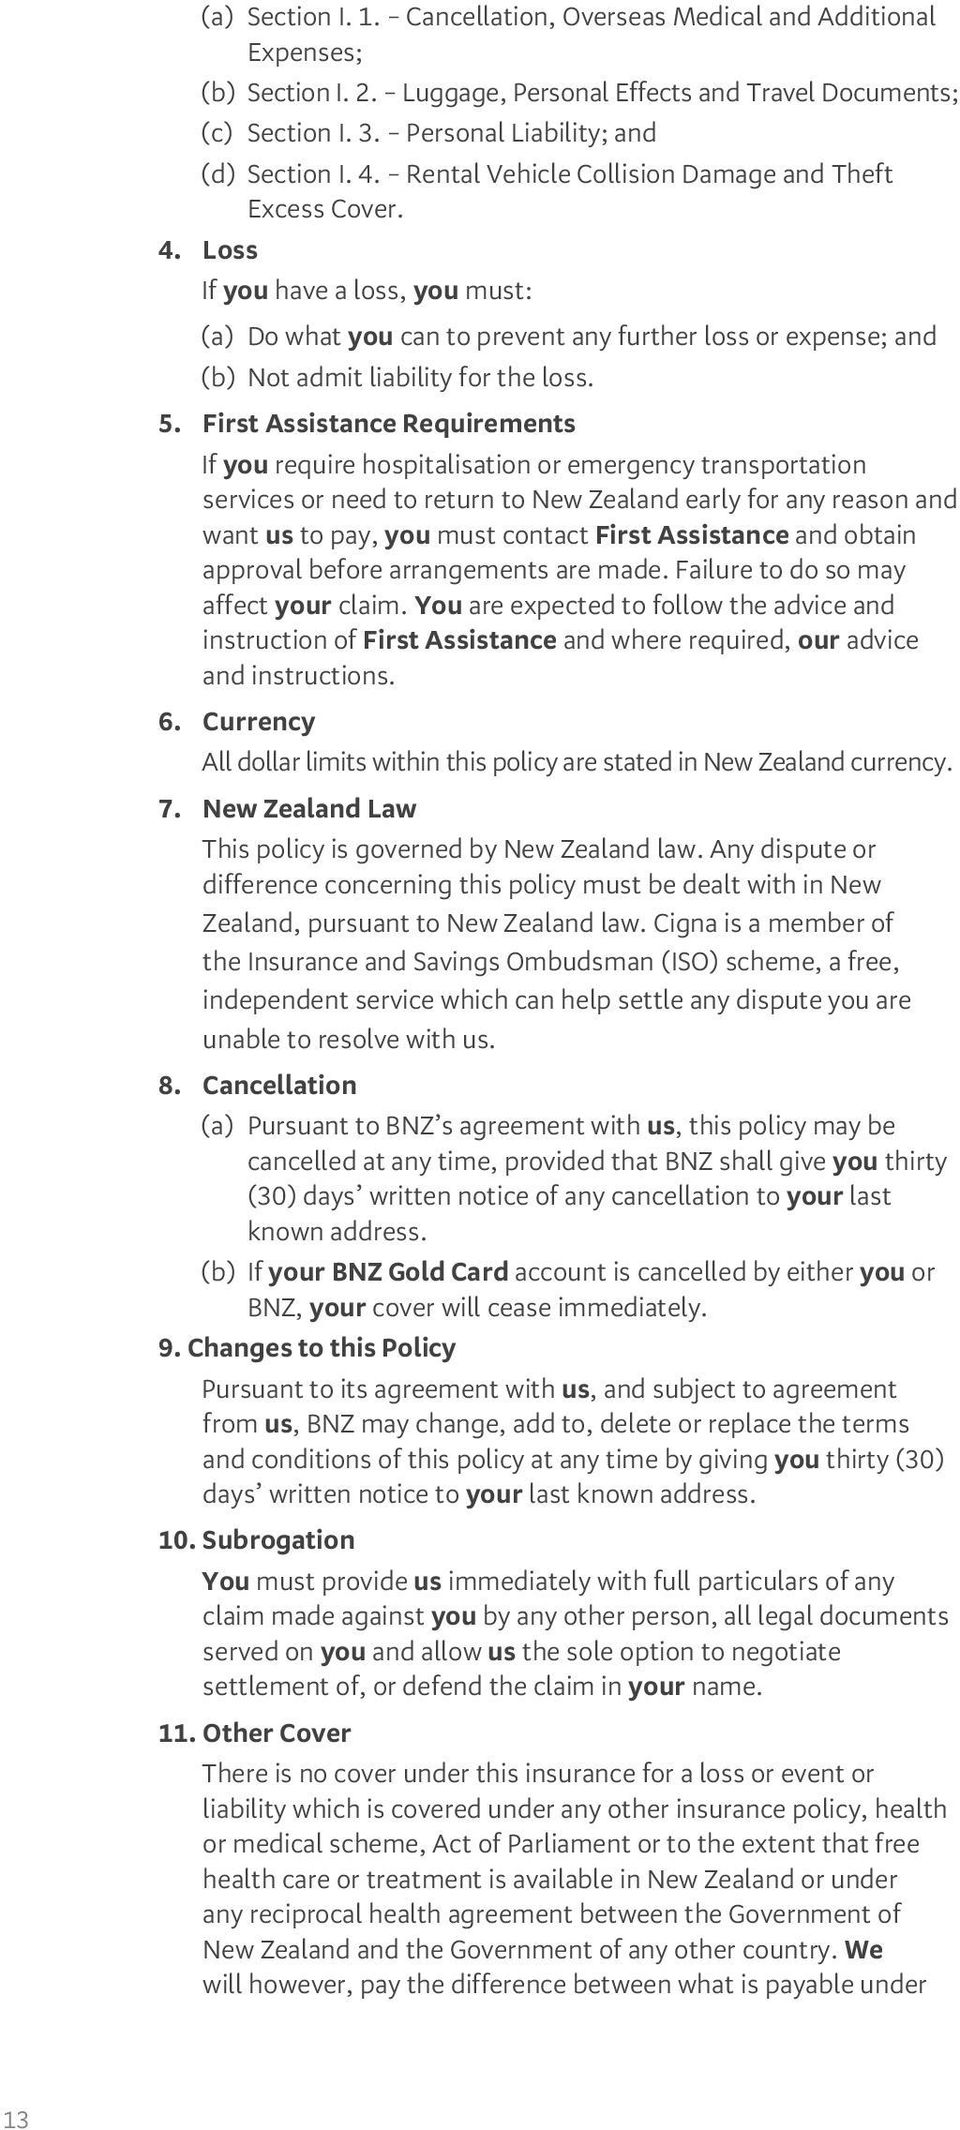 First Assistance Requirements If you require hospitalisation or emergency transportation services or need to return to New Zealand early for any reason and want us to pay, you must contact First